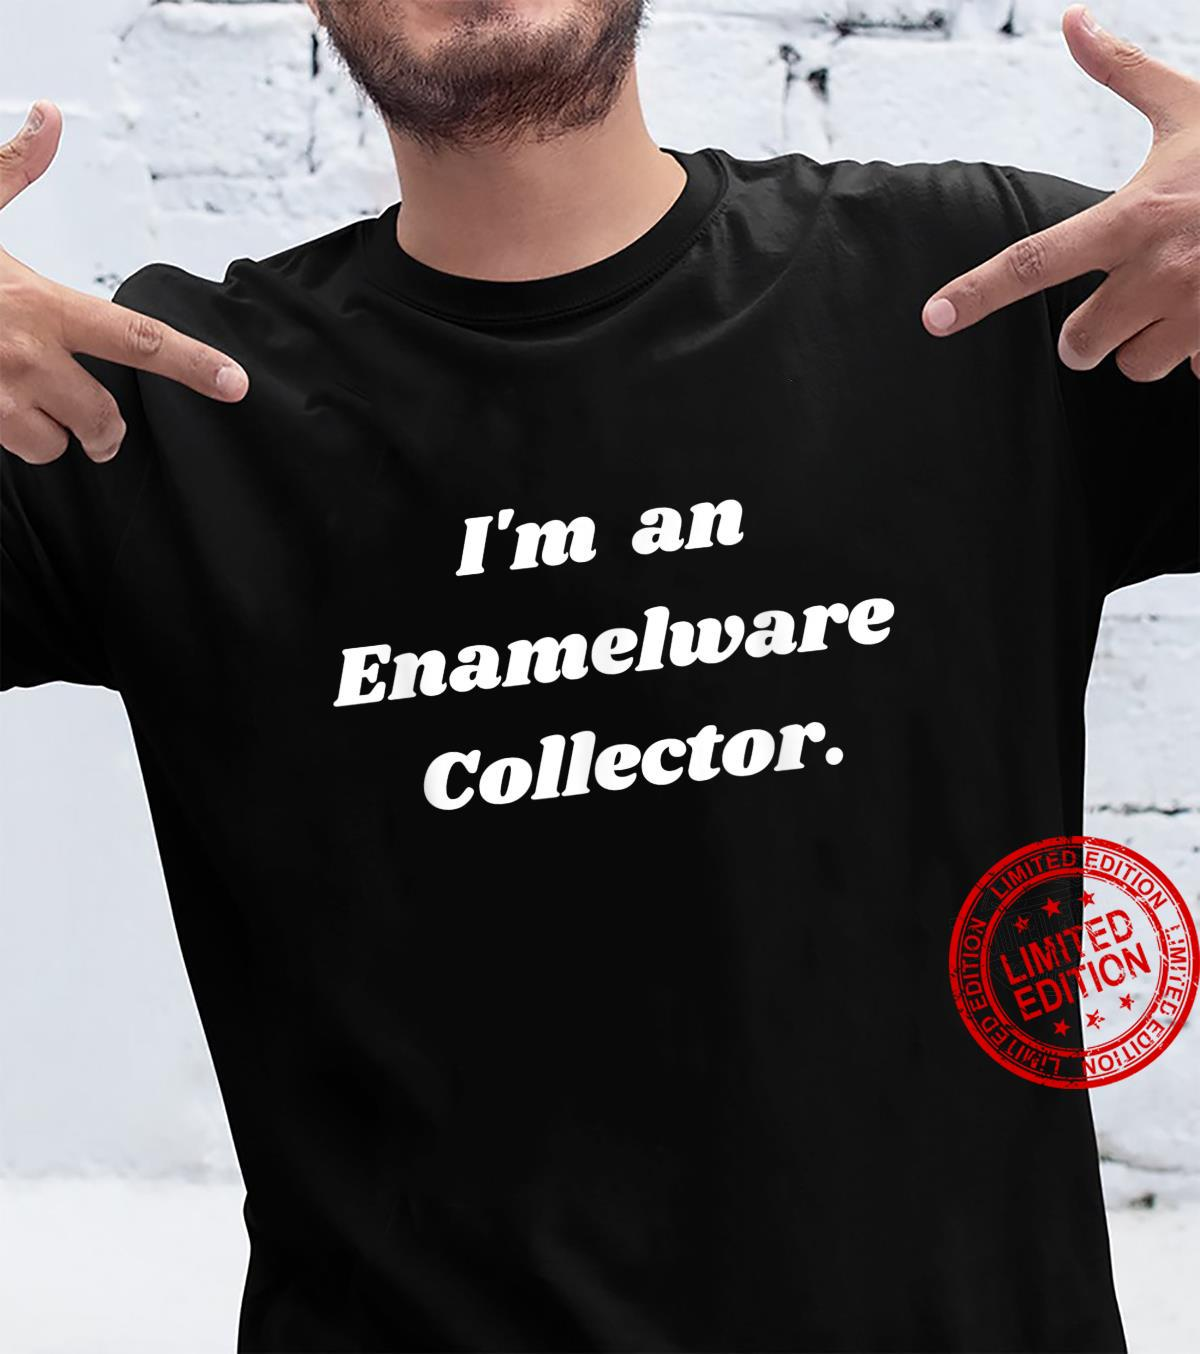 I'm an enamelware collector. Shirt